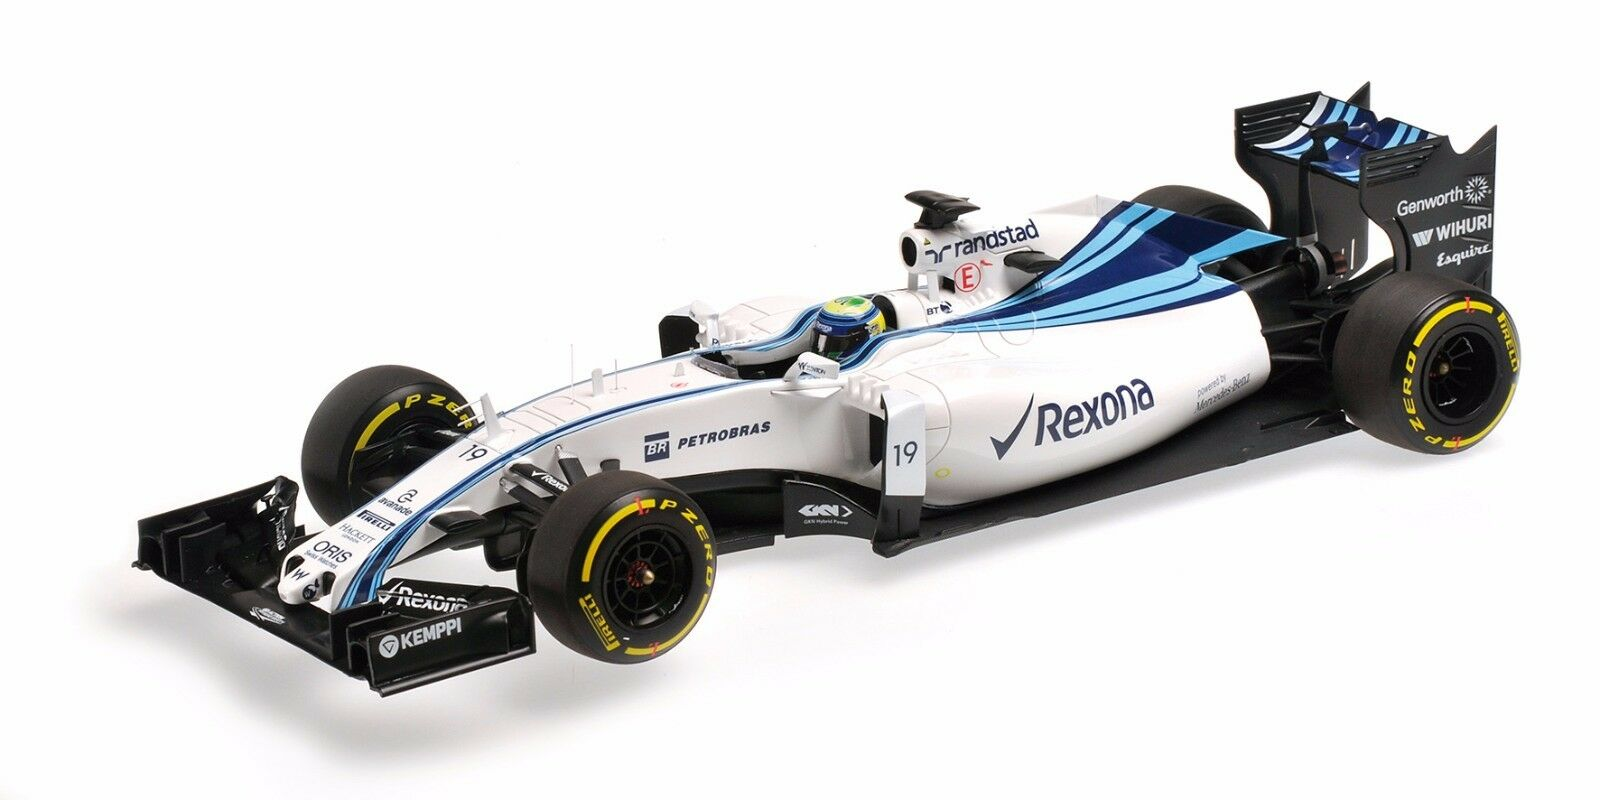 Felipe massa williams martini fw 37 abu dhabi gp 2015 minichamps 1,18 f1